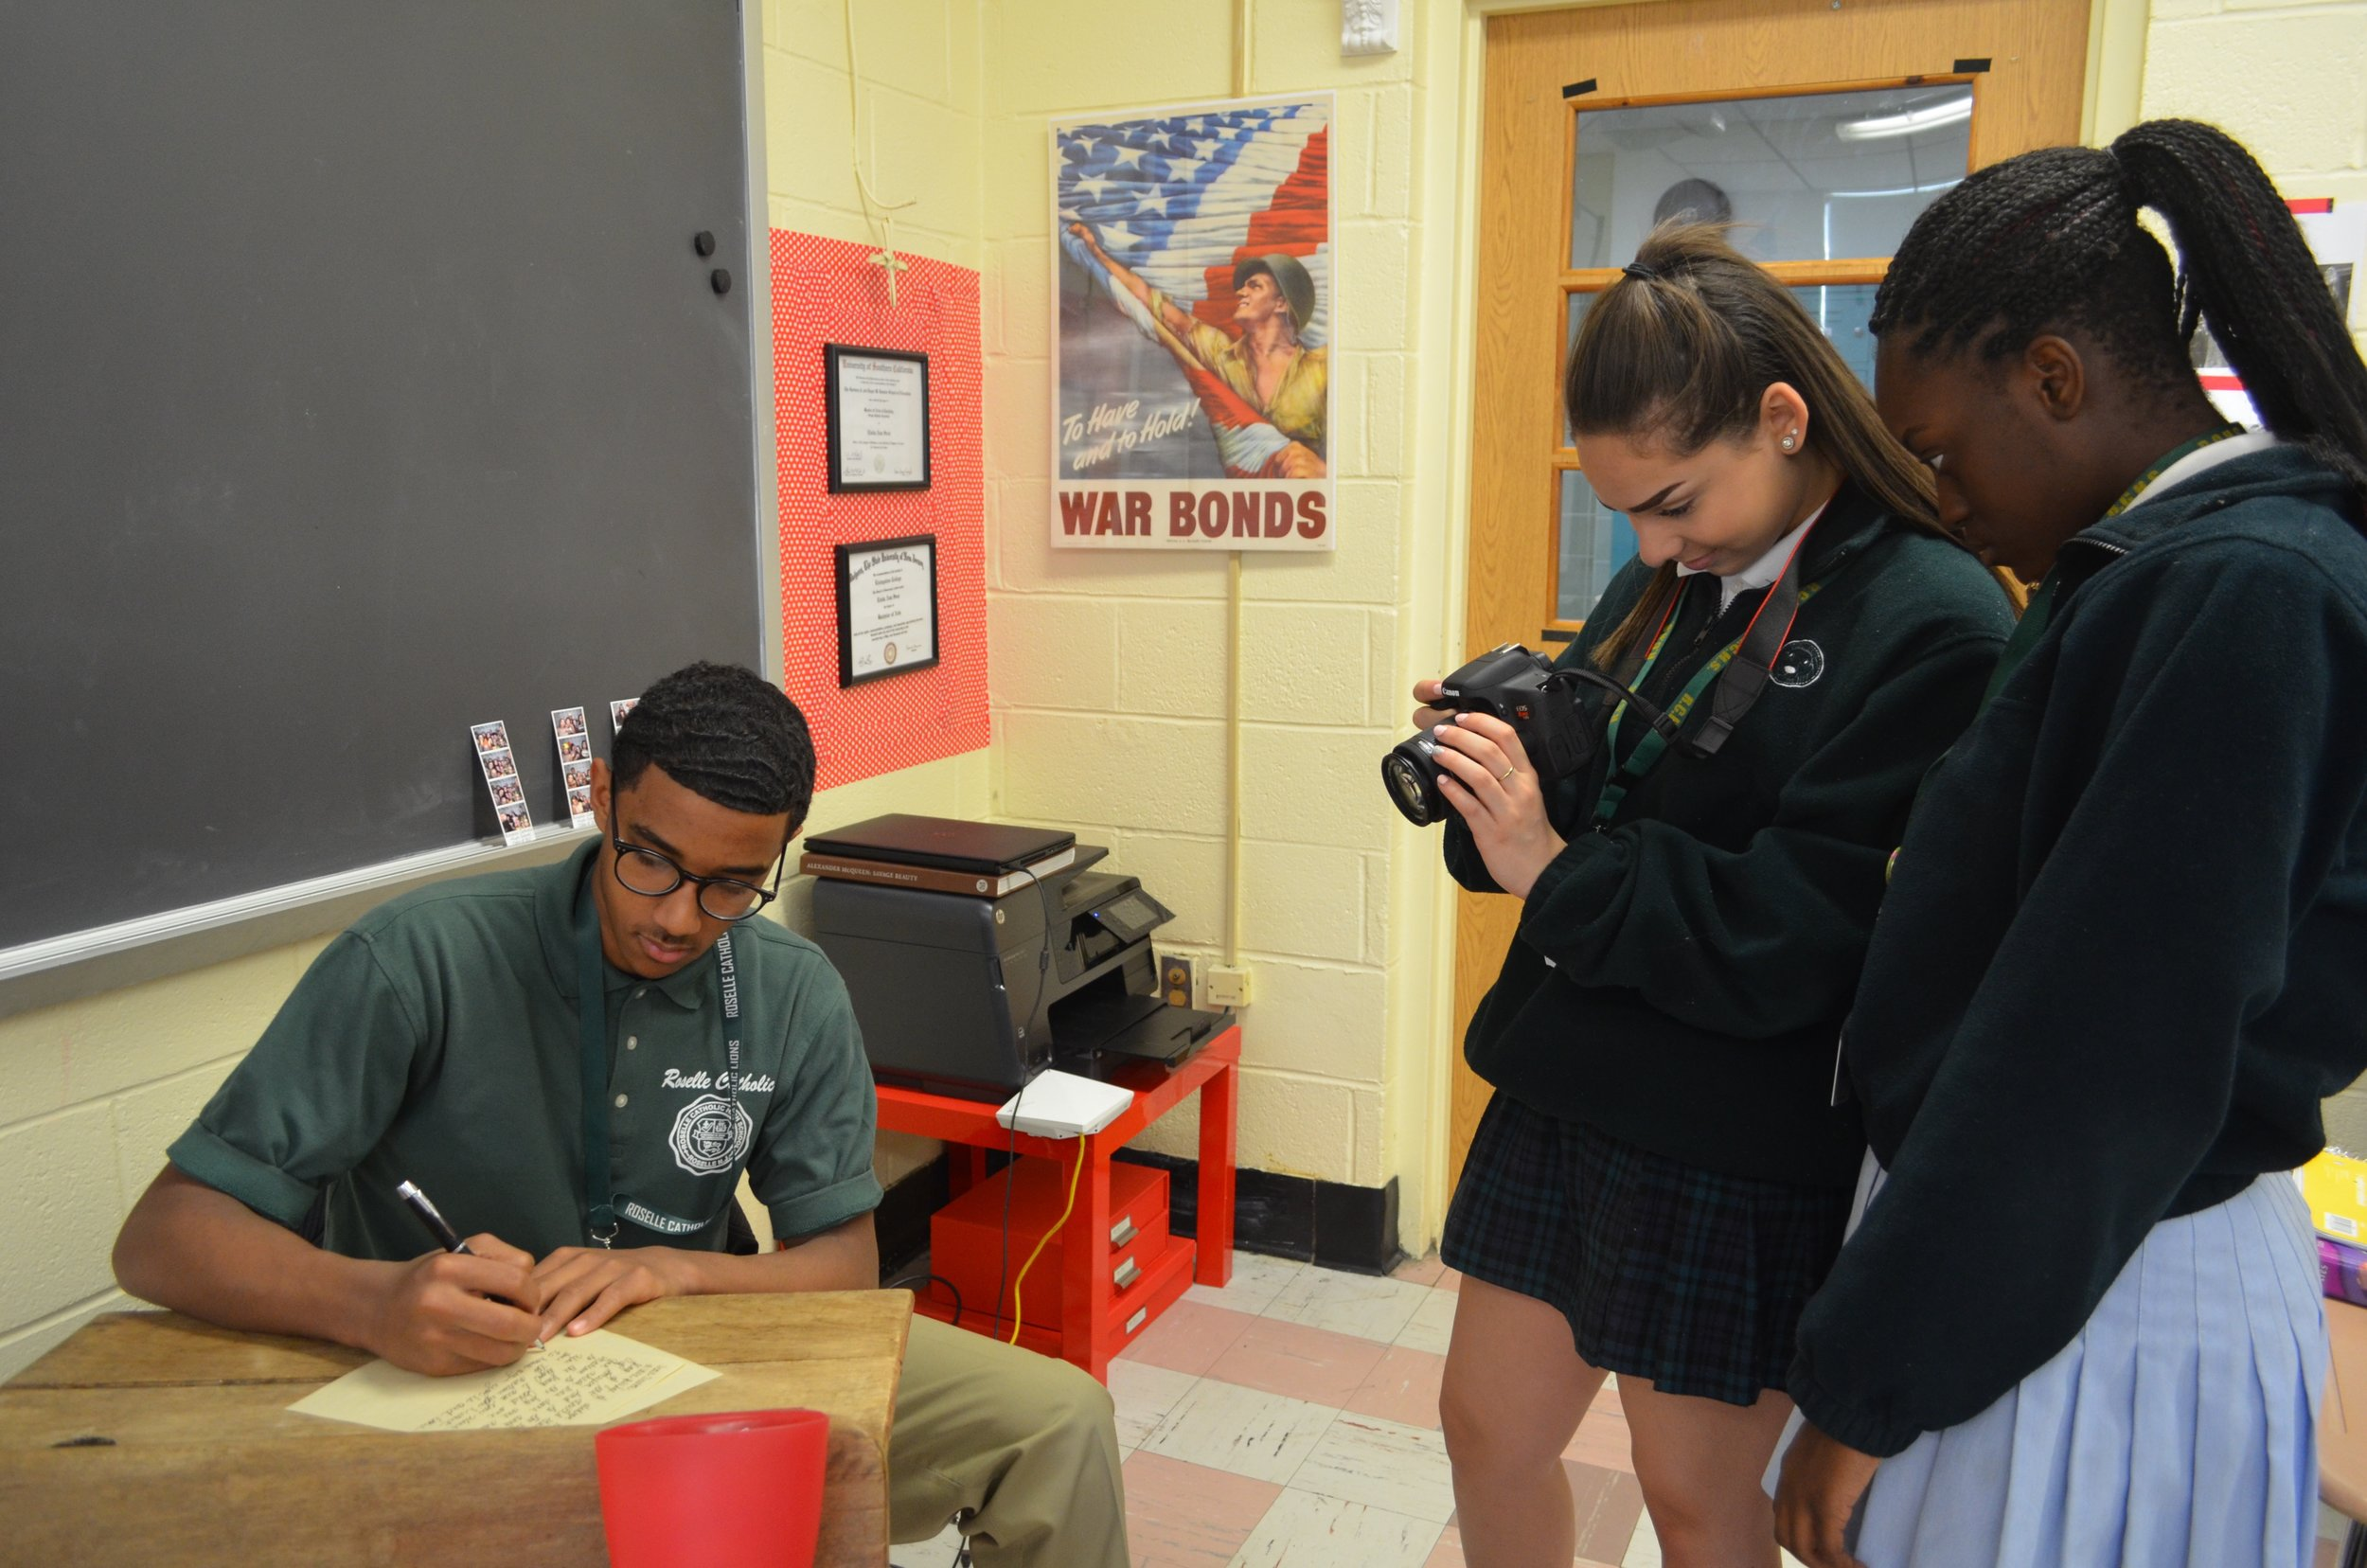 AP & HONORS - All of our courses in the core areas, as well as Art, offer Honors sections, which feature advanced material and heightened student responsibilities. Students in Honors sections receive a weighted grade that reflects these additional commitments. Selection for Honors sections is based on student achievement in previous related coursework and teacher recommendations.Additionally, Roselle Catholic offers a number of Advanced Placement (AP) courses approved by The College Board.  The College Board is a non-profit organization that controls the designation